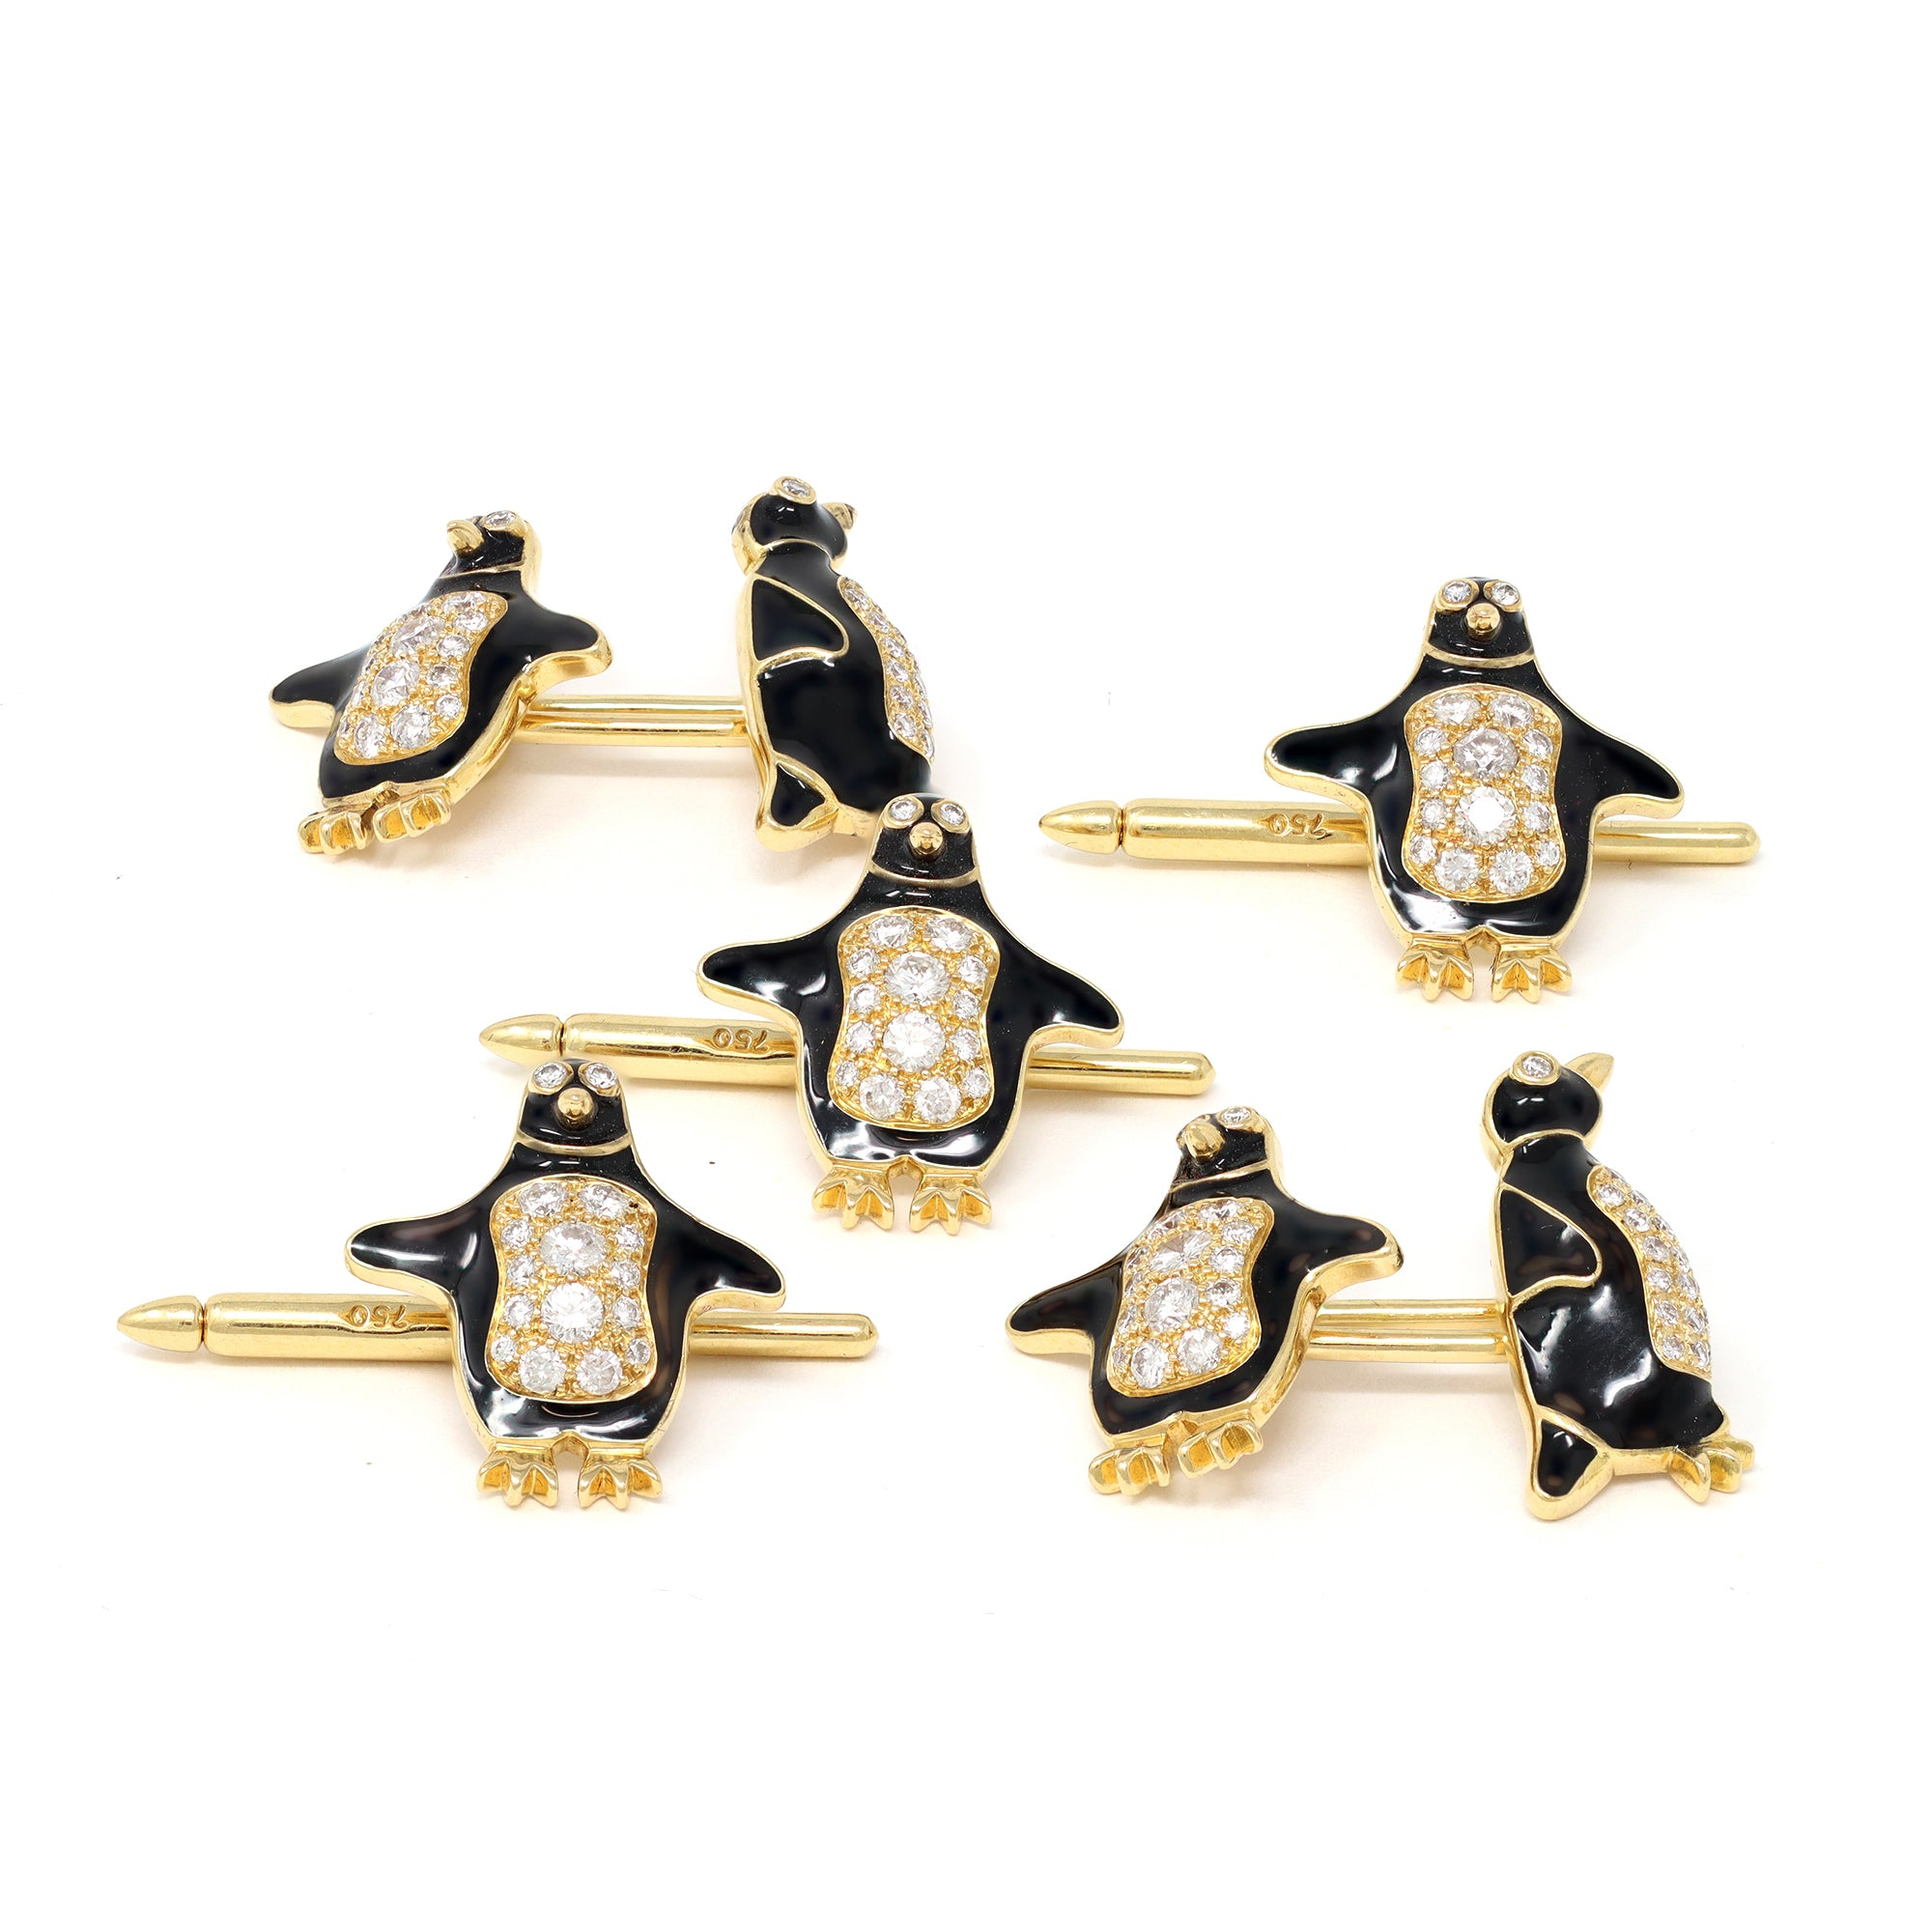 Tiffany & Co. Diamond and Enamel Penguin Stud and Cufflinks Set group view